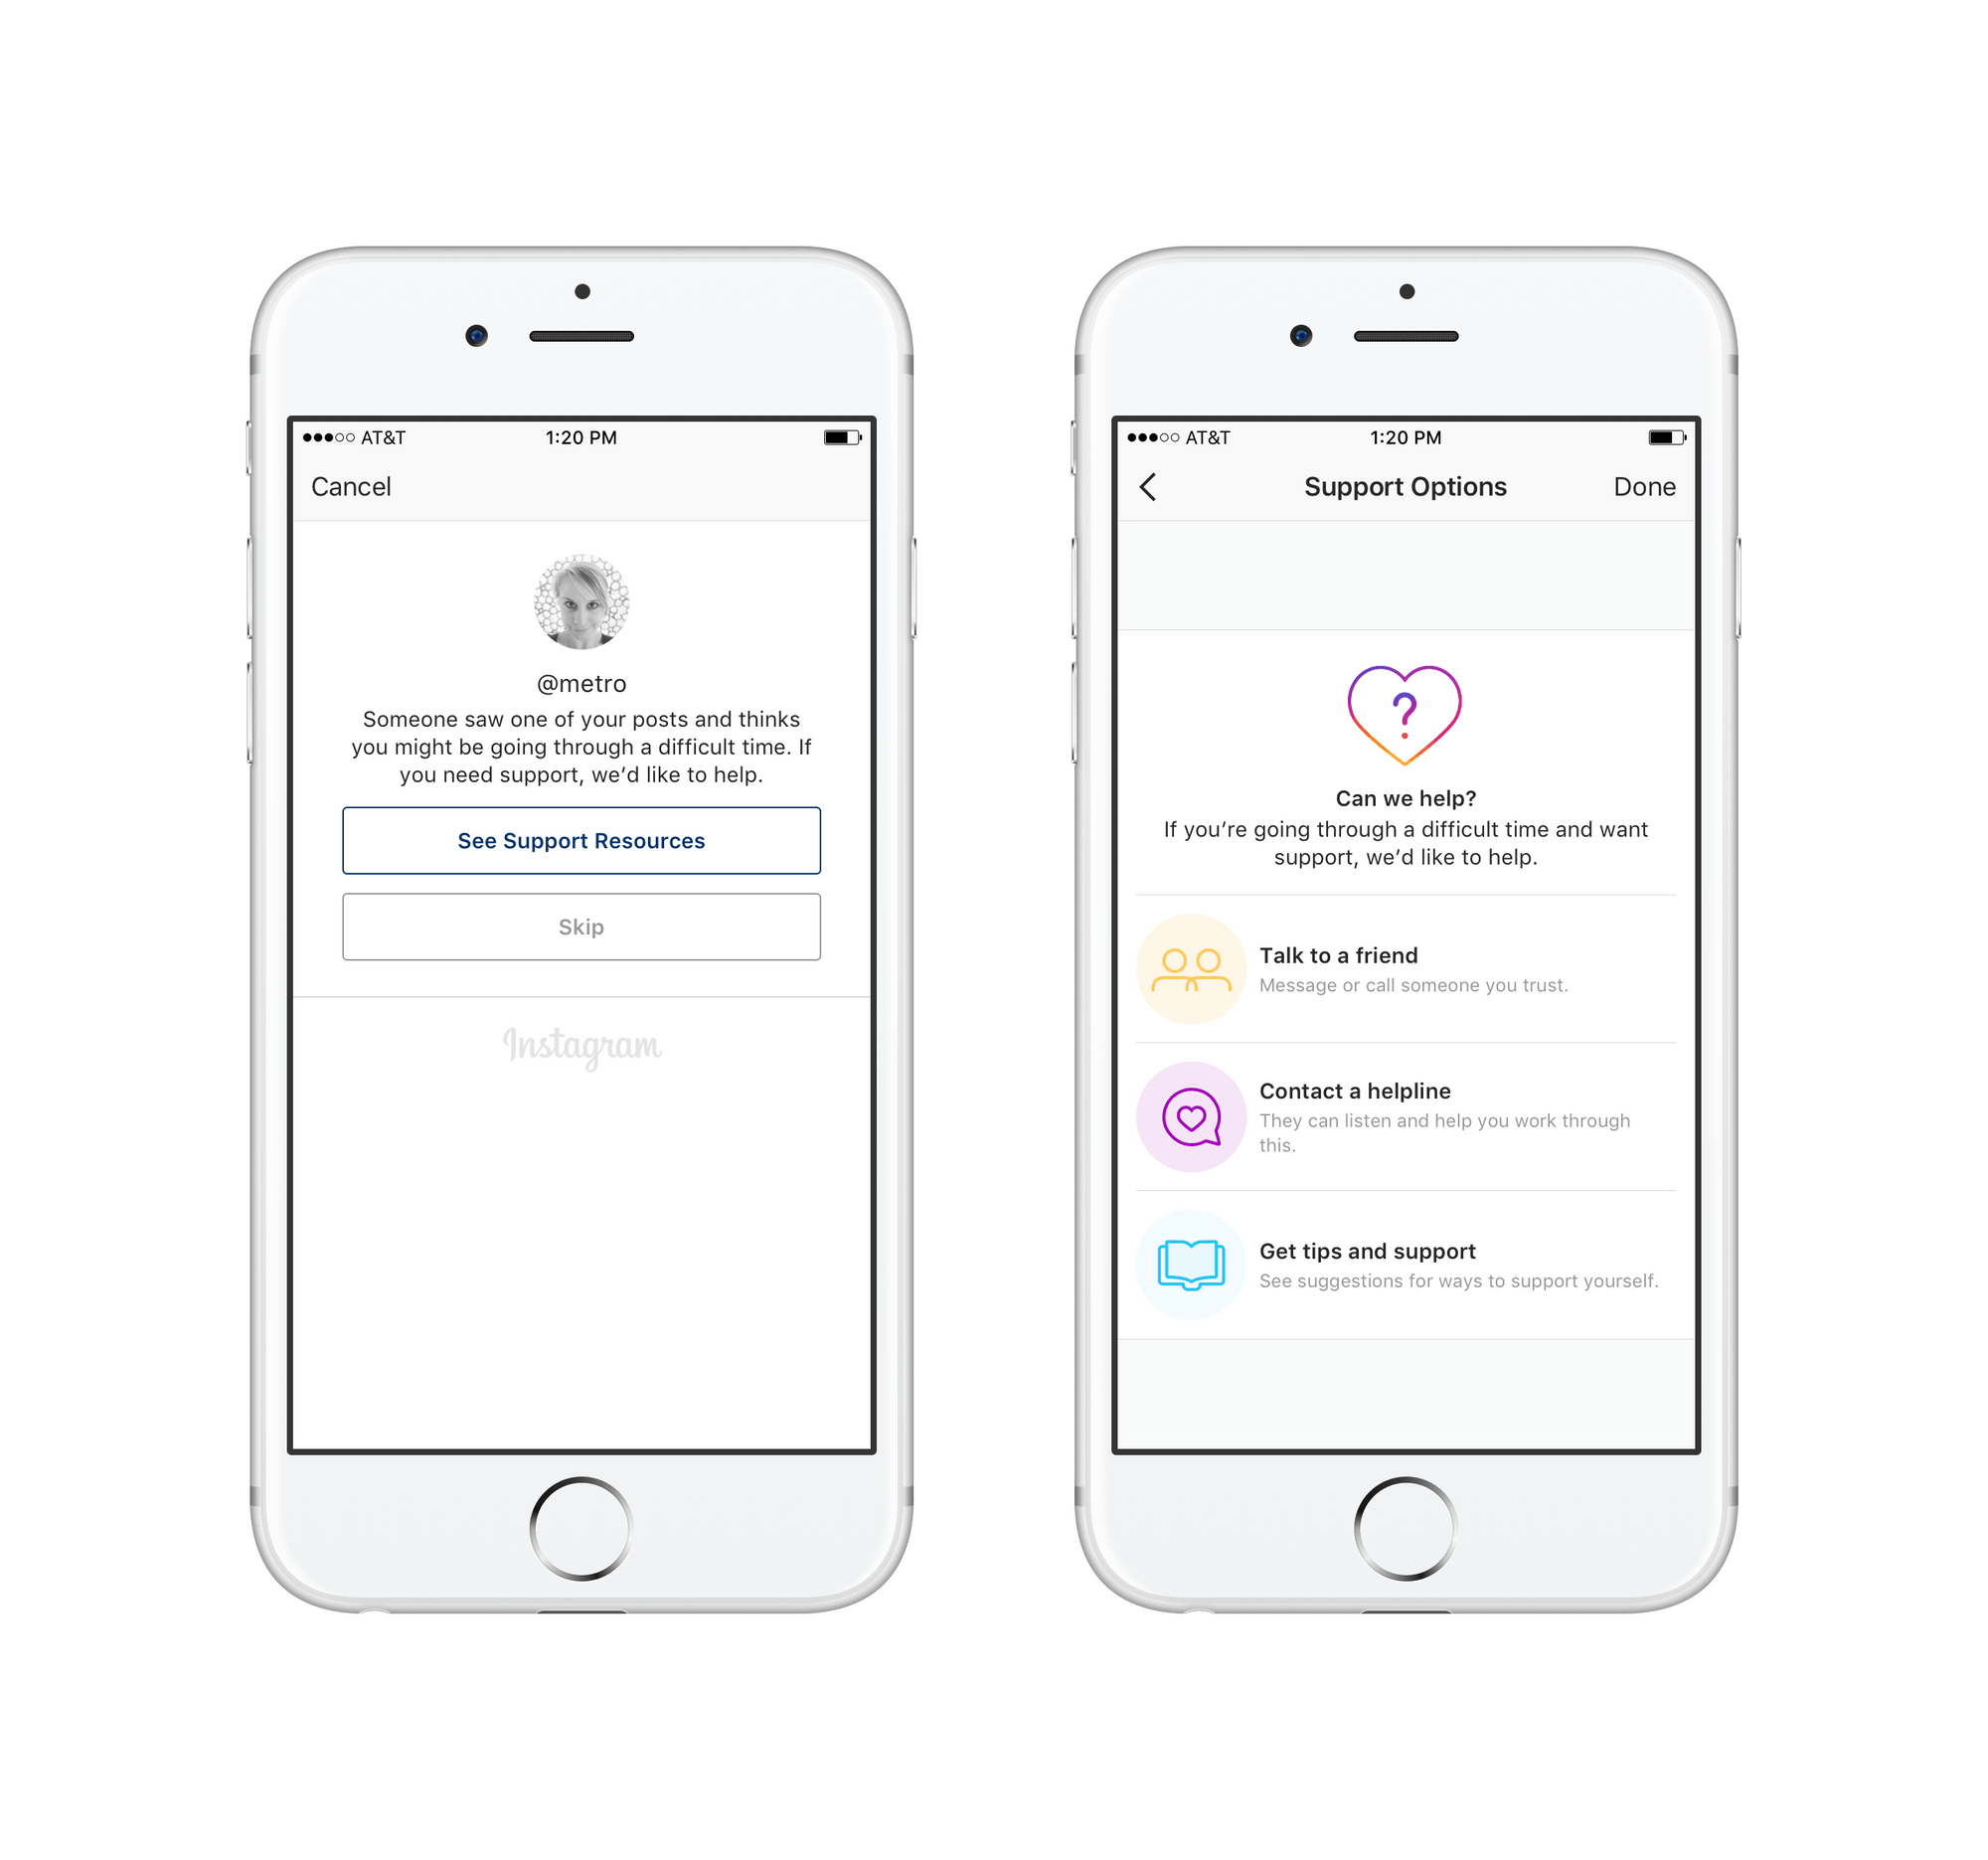 Prompt for mental health resources and support through Instagram